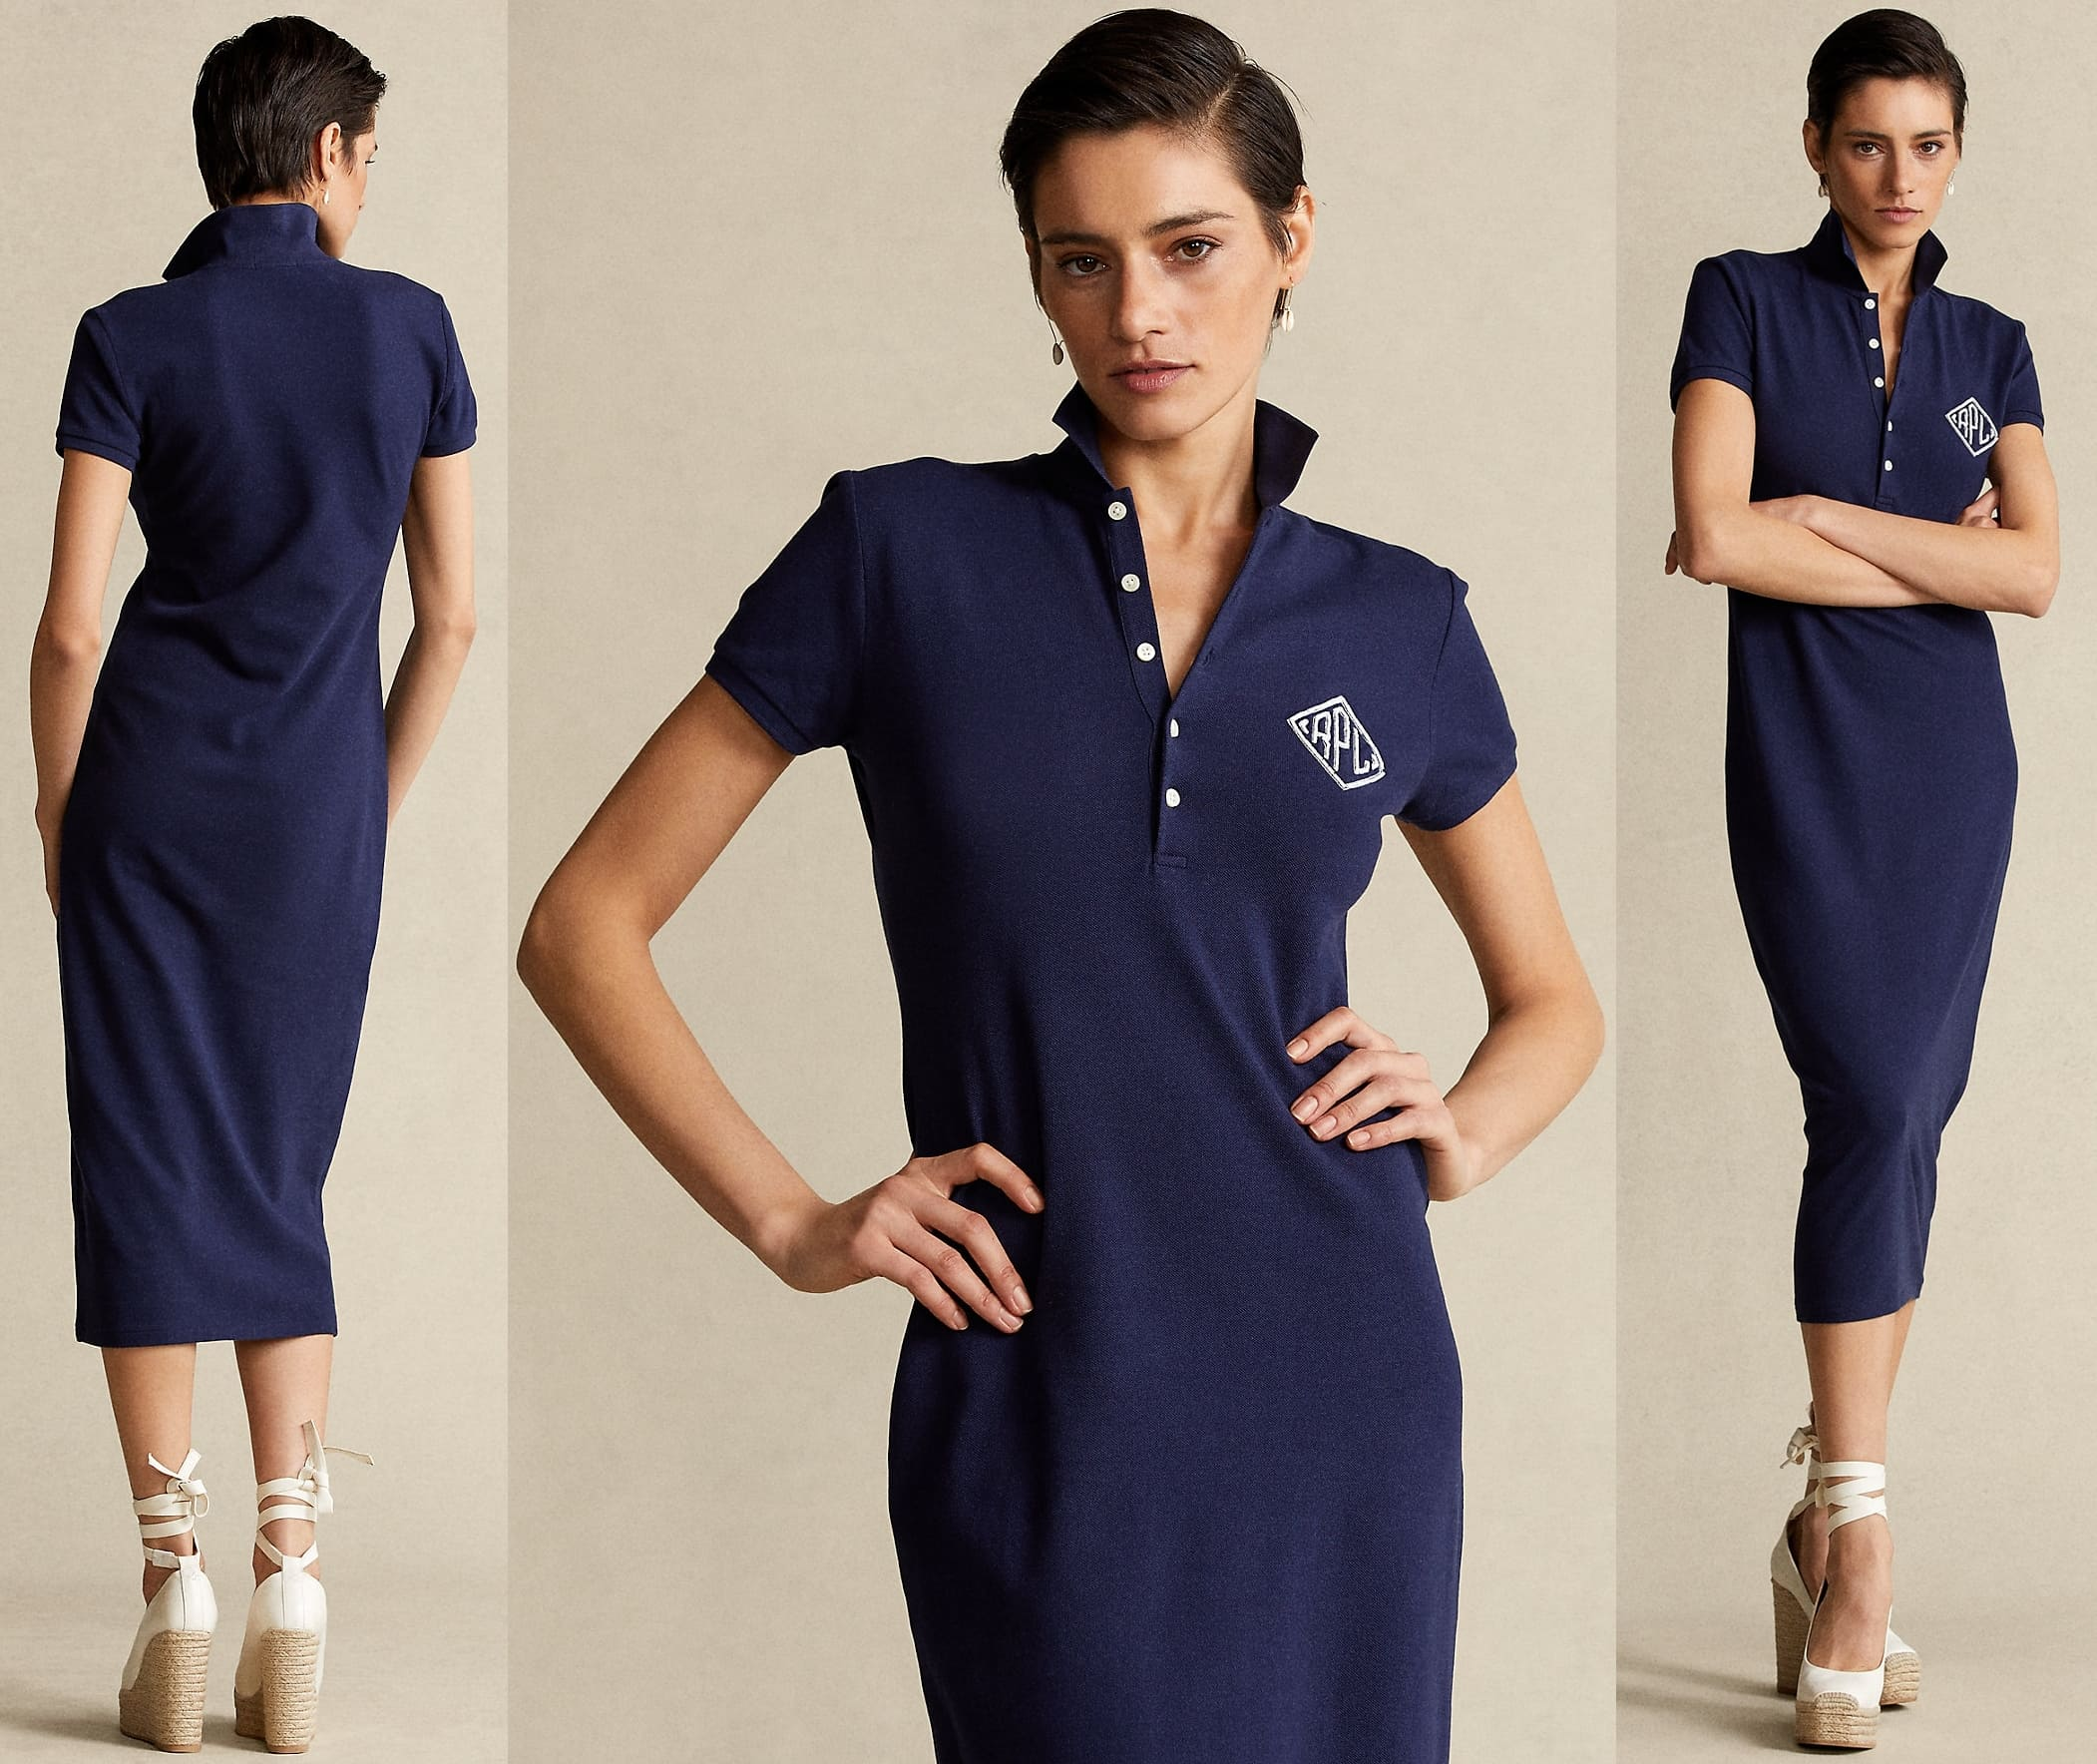 Presented in an elongated silhouette, this dress draws influence from Ralph Lauren's iconic Polo shirt